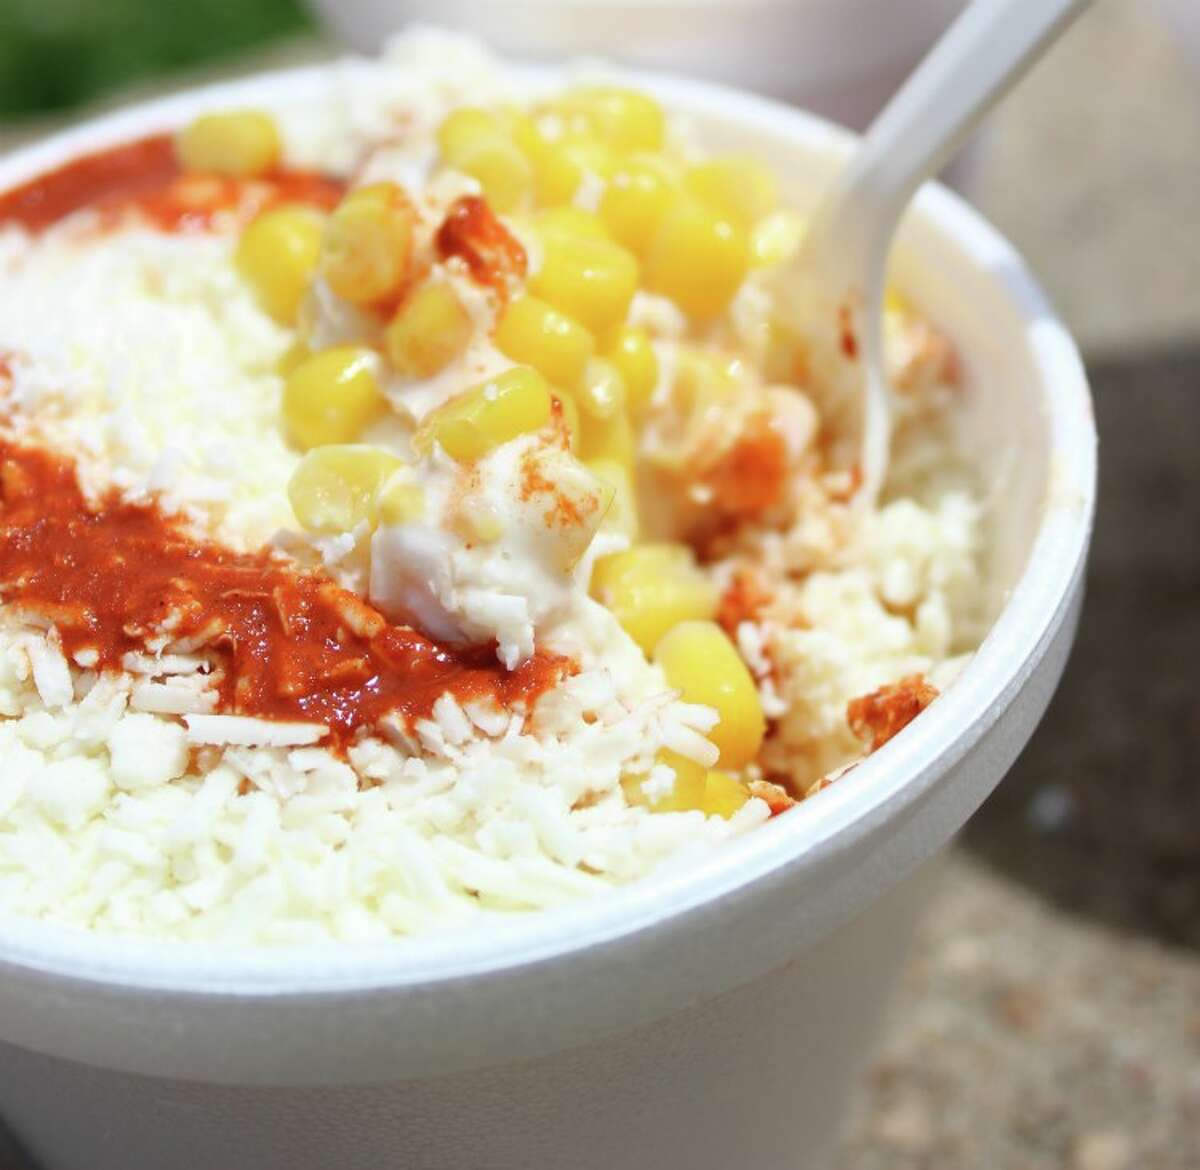 """Organizer and owner of El Chistoso Elotes Robert Reyes originally planned to have the free """"Roasted Corn Festival"""" last March at Copernicus Park but postponed it twice in the COVID-19 era."""